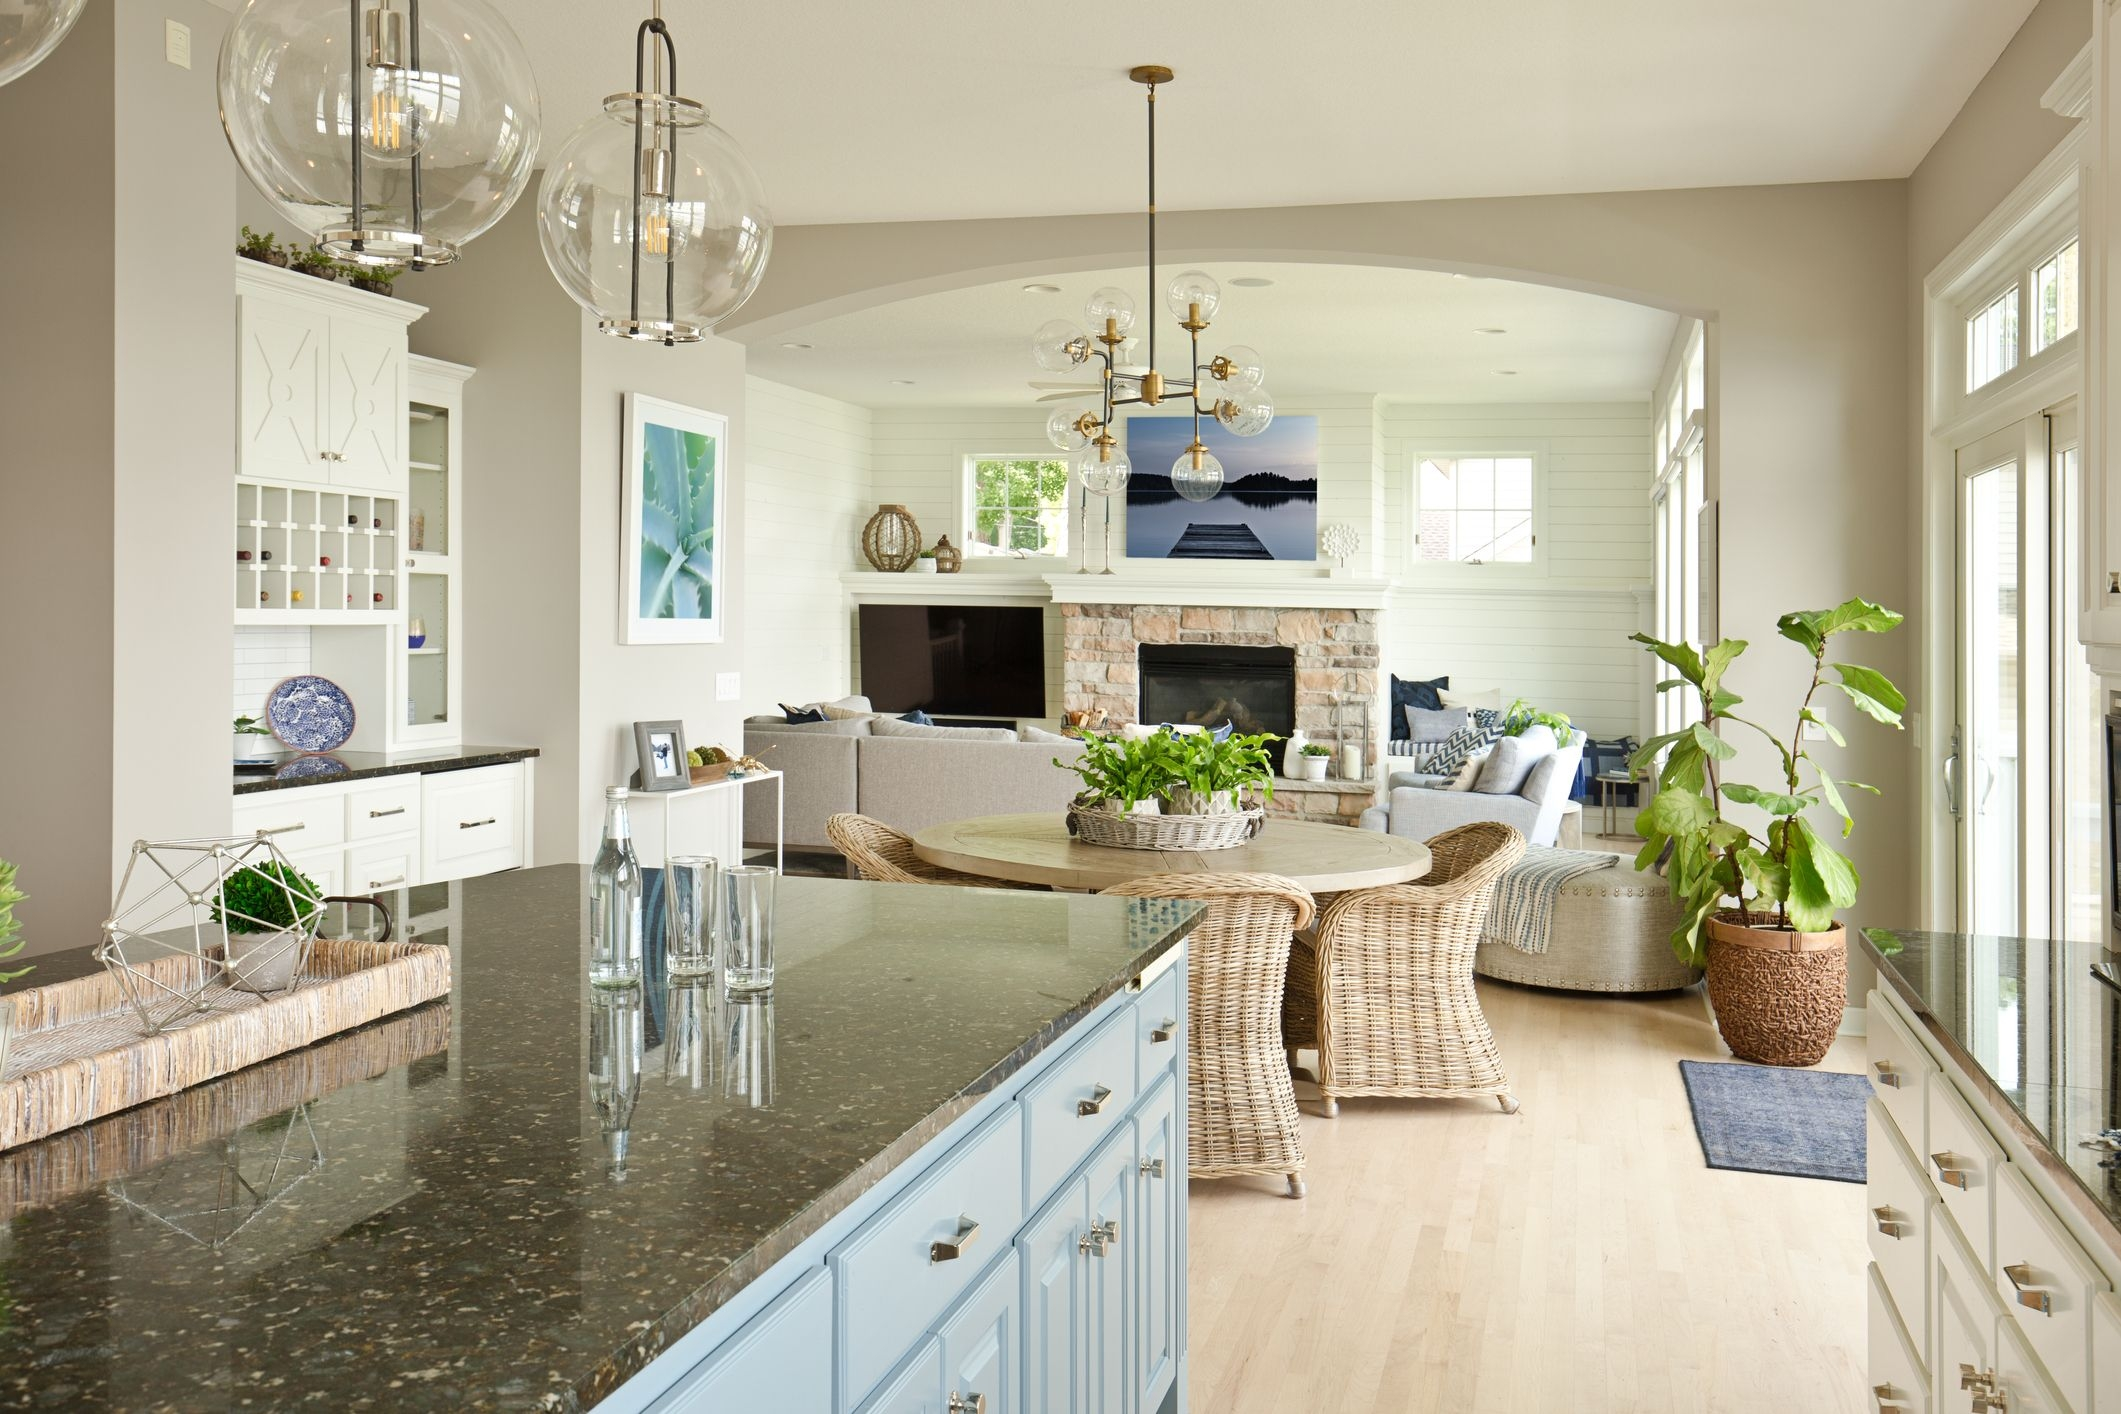 Please Stop With The Open Floor Plans | House Plans With Stairs In Kitchen | Luxury | Separate Kitchen | Compact Home | 2 Bedroom Townhome | Central Courtyard House